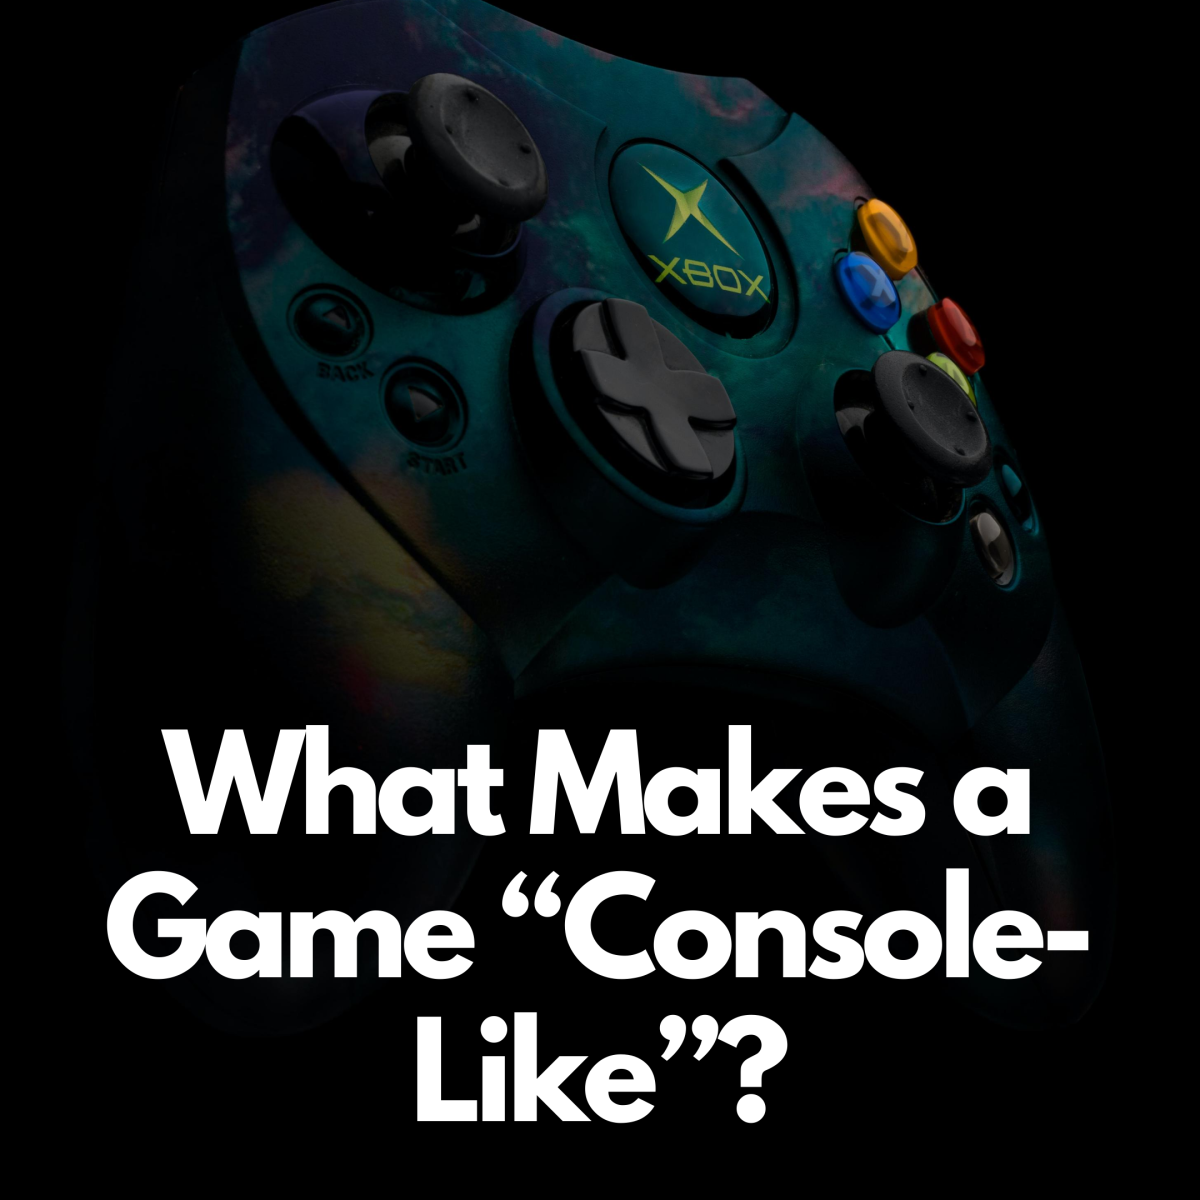 What Makes a Video Game